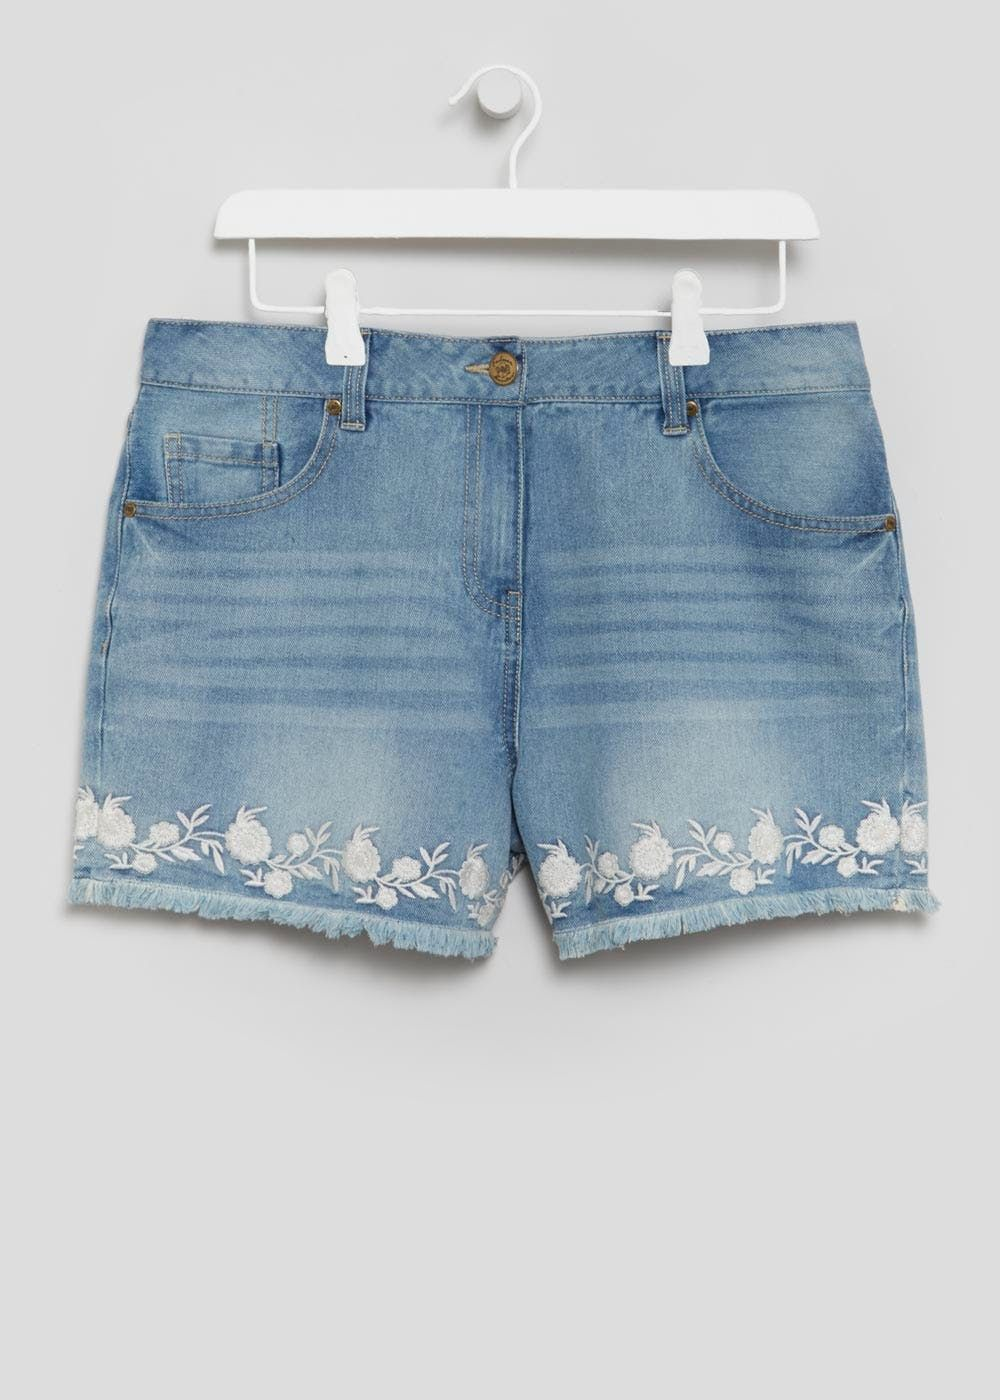 9d3d7761ab Shorts in a midwash denim with white floral embroidery at the frayed hem.  Falmer Heritage is exclusive to Matalan. The range captures the unique  effortless.